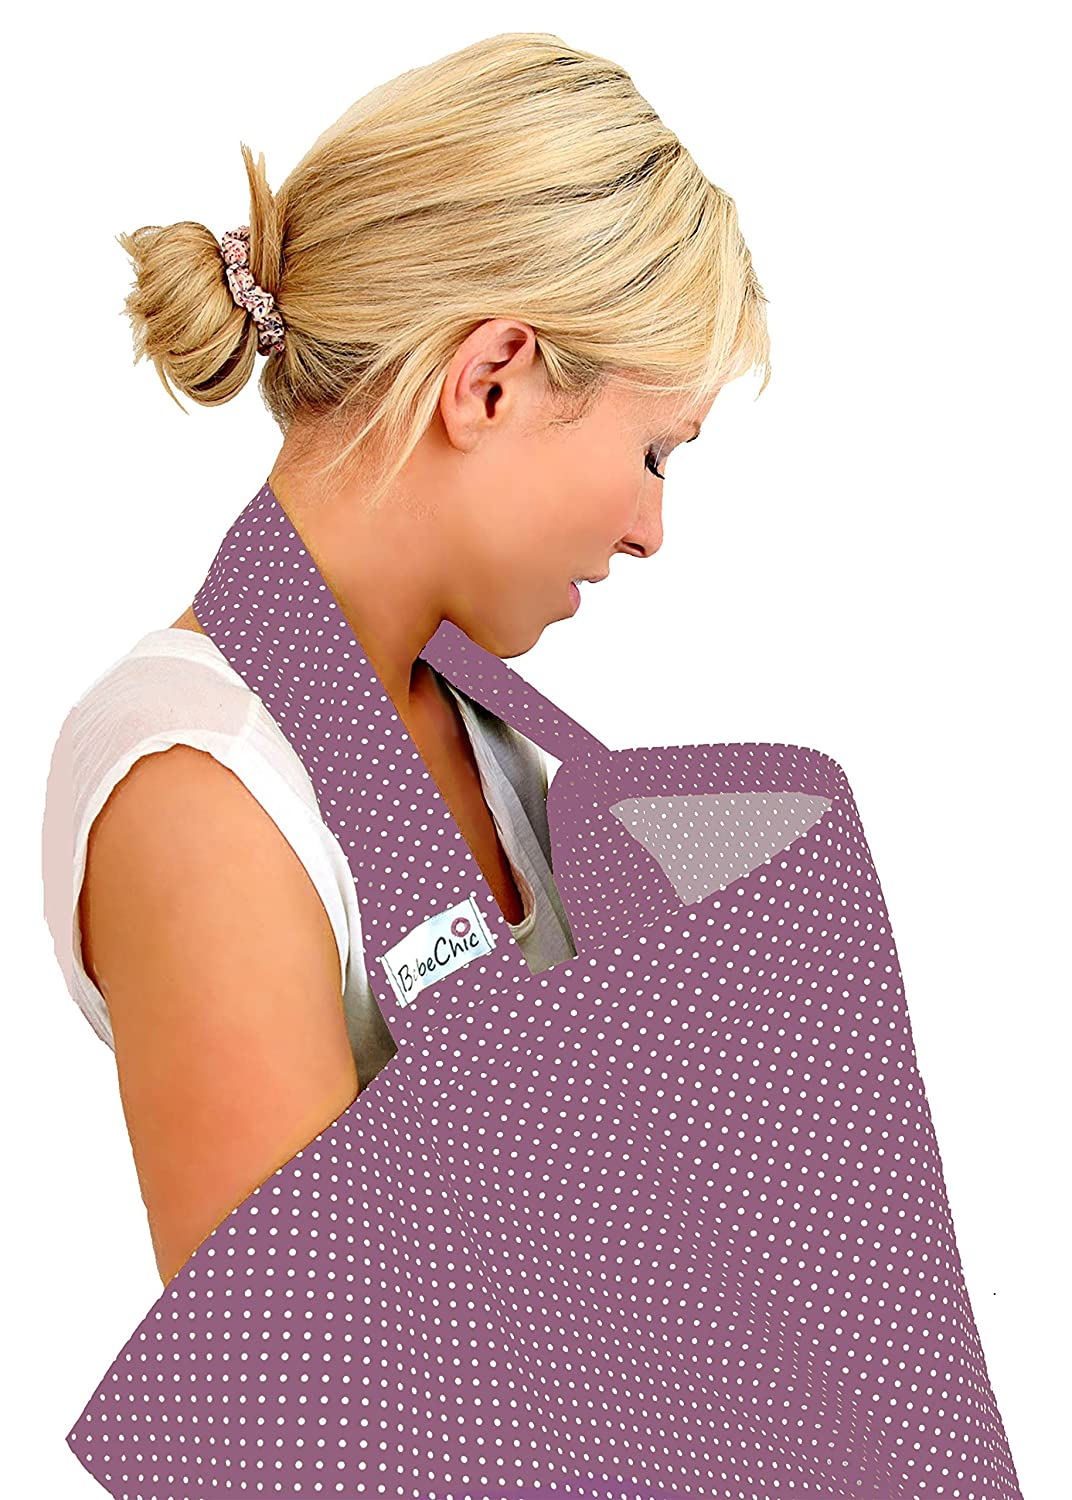 BebeChic.UK * Top Quality Oeko-Tex® Certified 100% Cotton * Breastfeeding Covers * Boned Nursing Tops - with Storage Bag - plum / ivory dot BebeChic Limited plum01